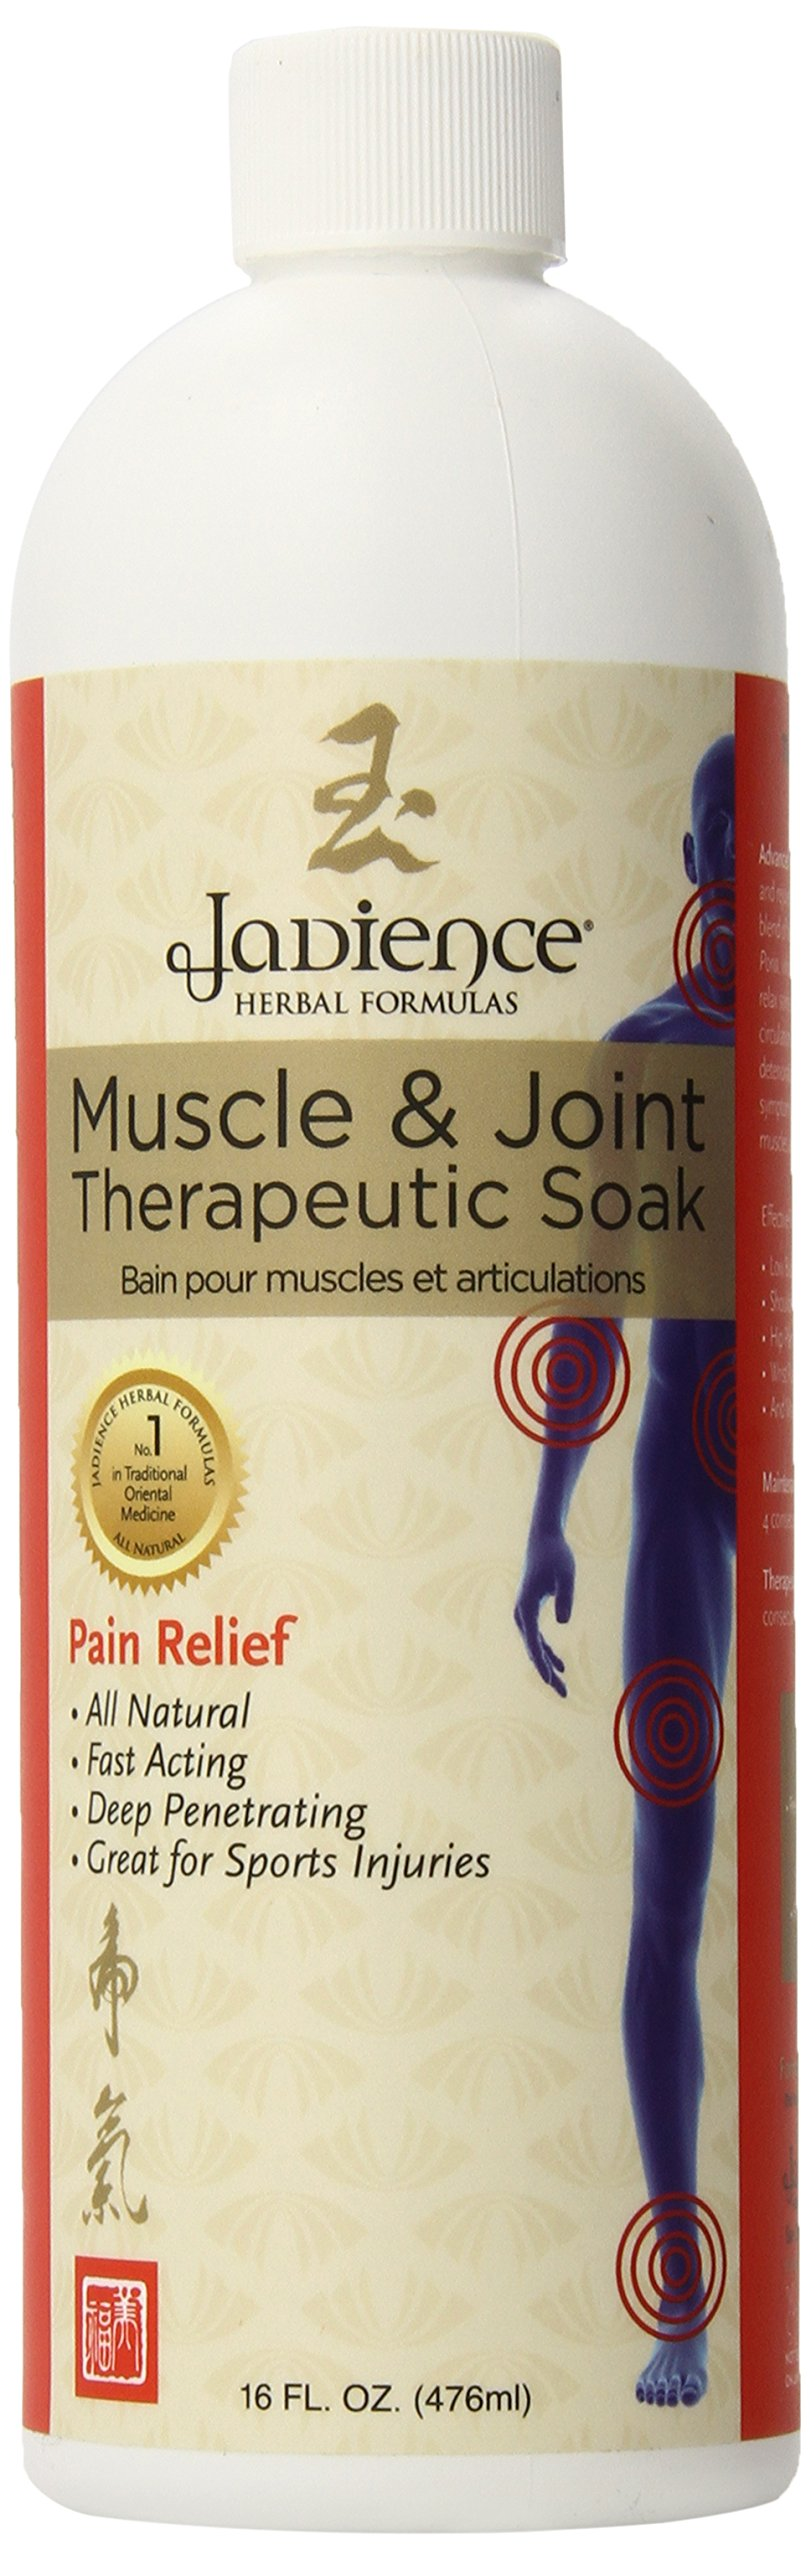 Jadience Muscle & Joint Pain Relief Herbal Bath – 16oz - SORE MUSCLES, SWOLLEN JOINTS, PULLED MUSCLE & BACK PAIN MANAGEMENT